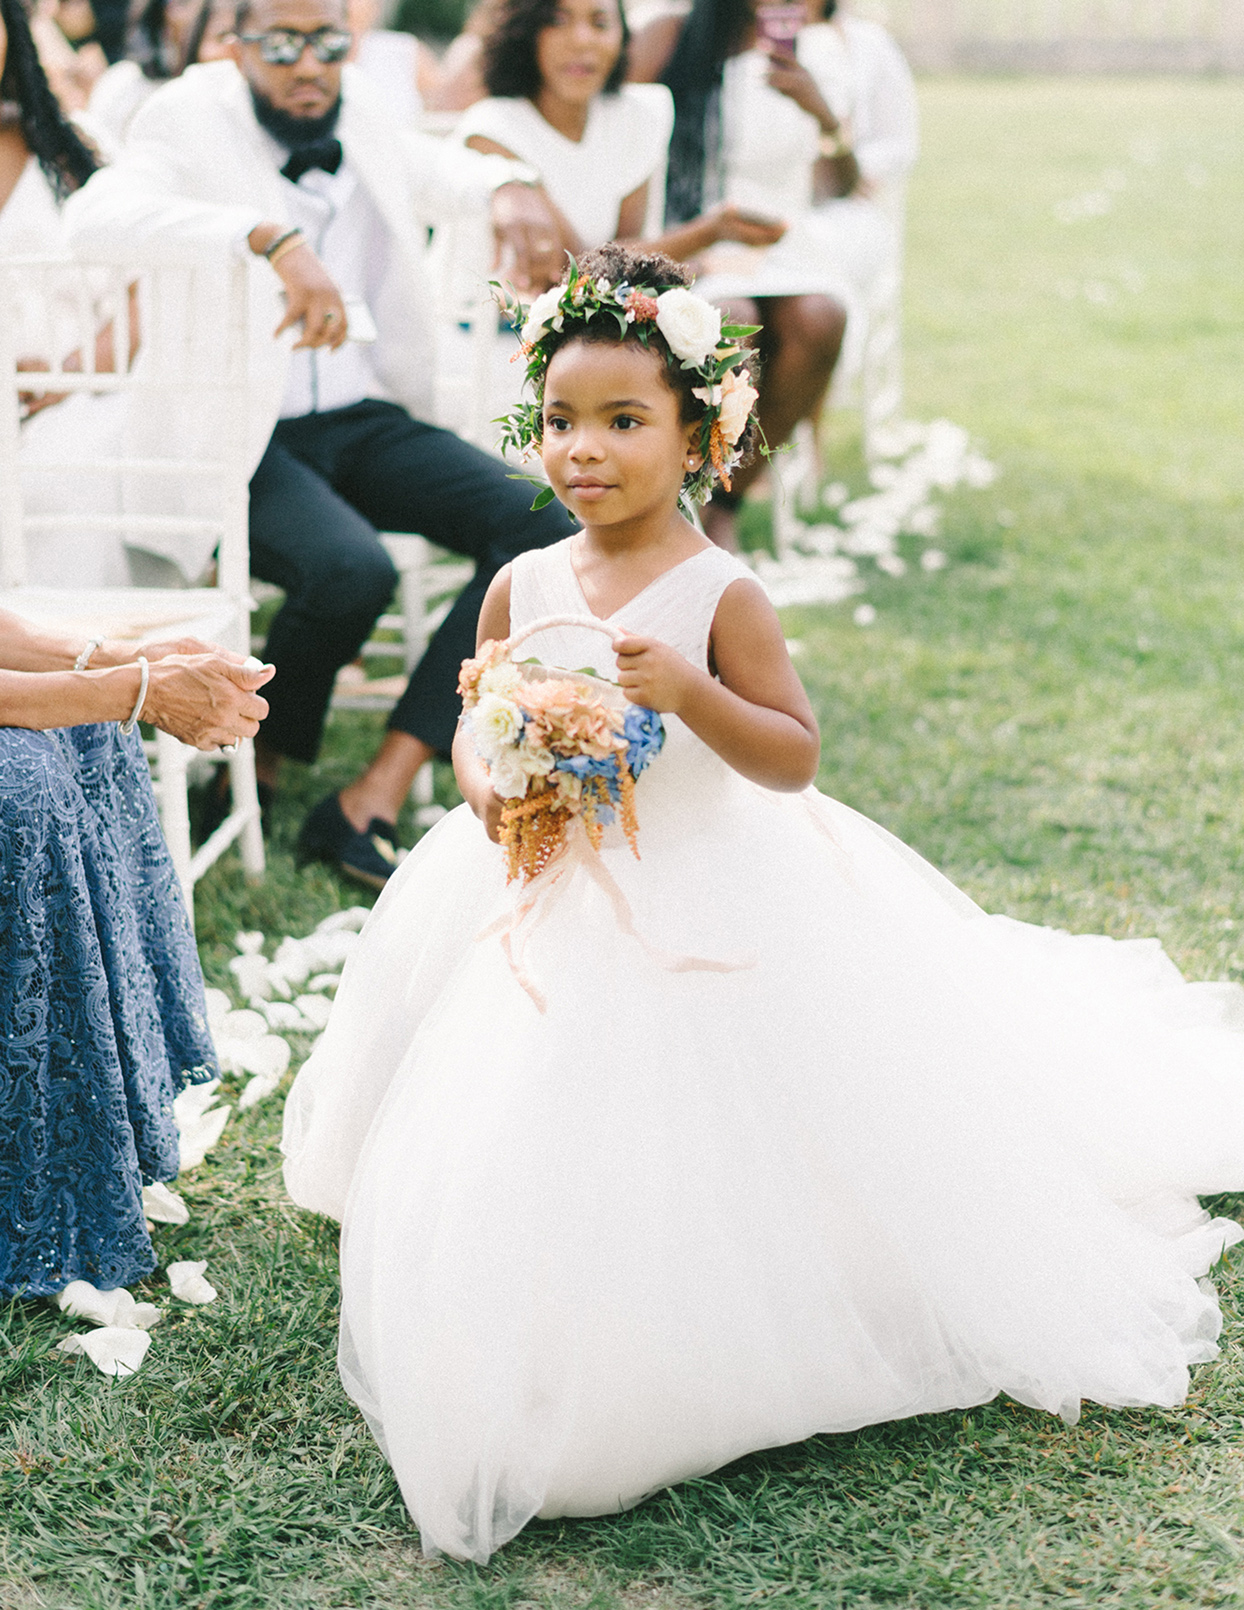 ericka meechaeyl wedding flower girl walking down aisle